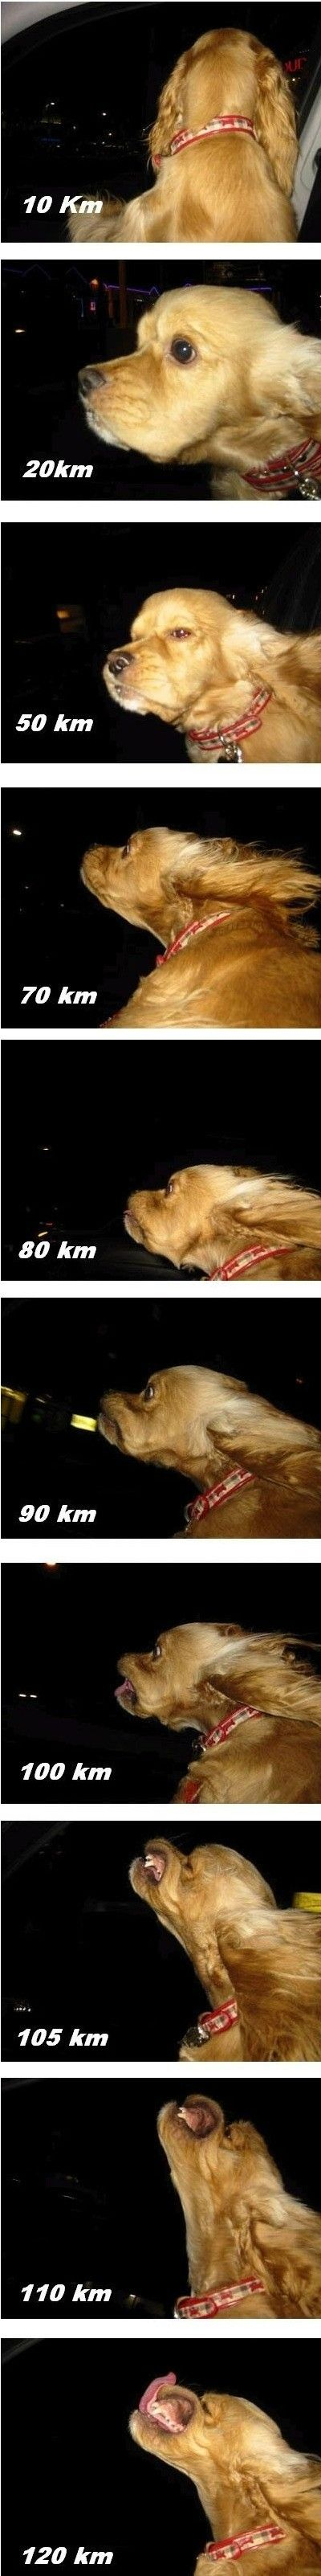 Photos of a dog sticking its head out the car window at increasing speeds...Laughing So Hard, Dogs Speedometer, Funny Stuff, Things, Hilarious, Laugh So Hard, So Funny, Giggles, Animal